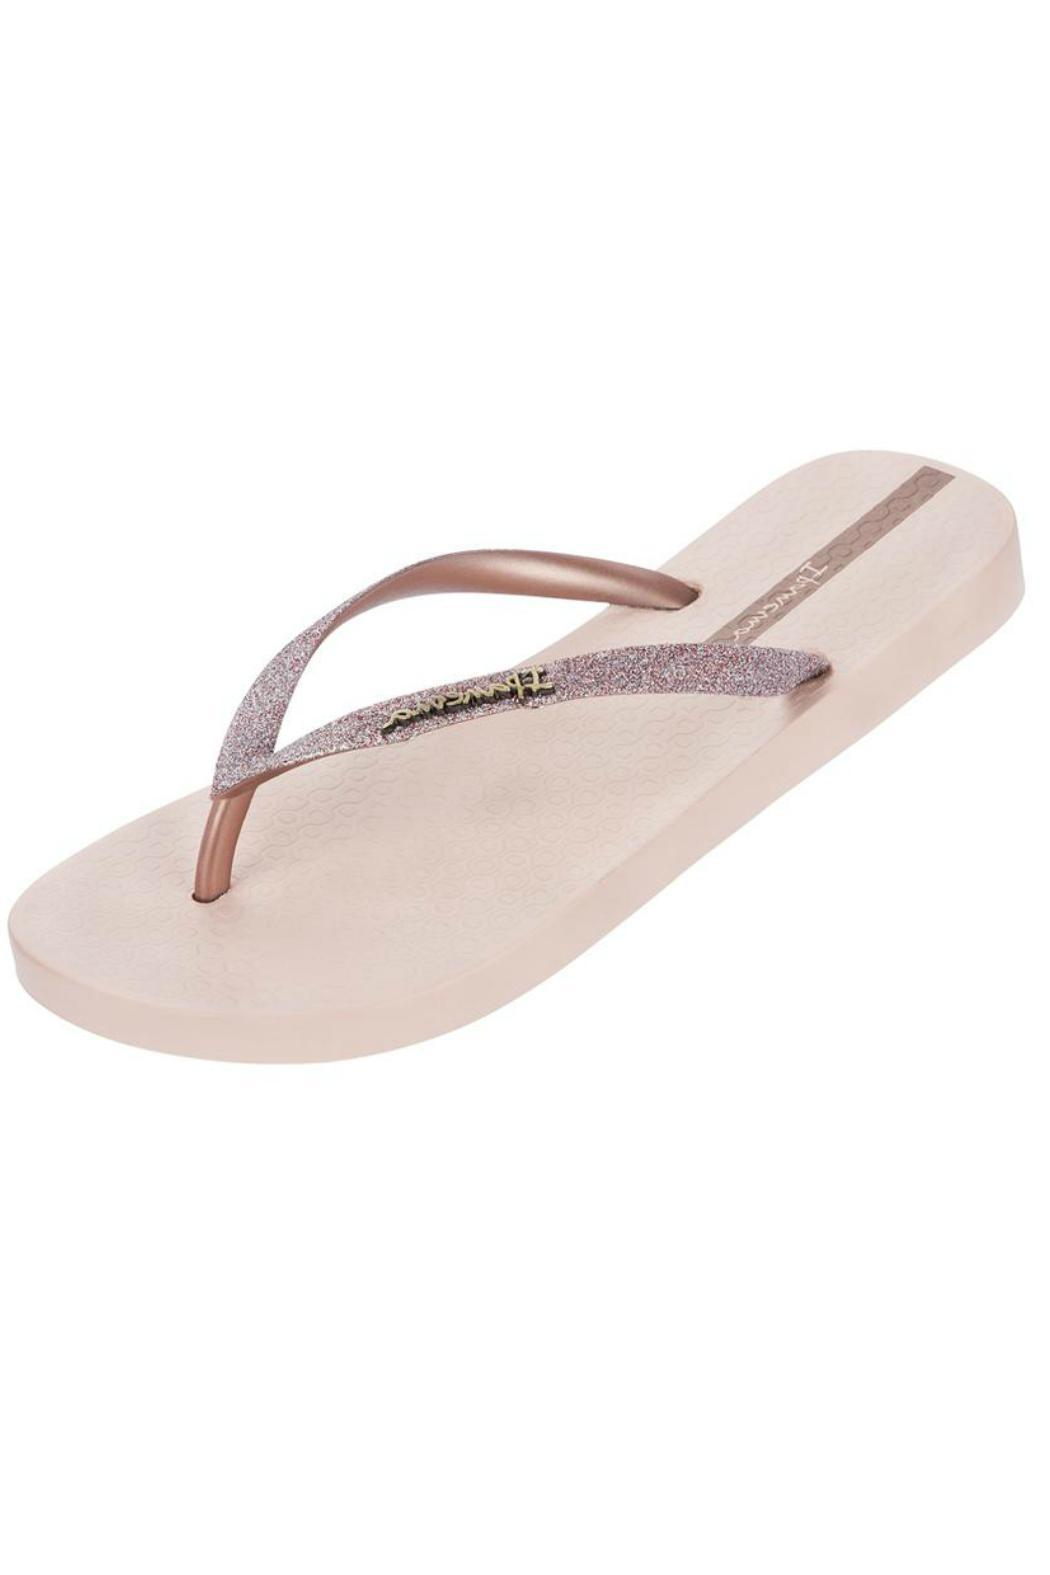 822c845c6be8ec Ipanema Glitter Flip-Flops from Pennsylvania by Well-Heeled Boutique ...